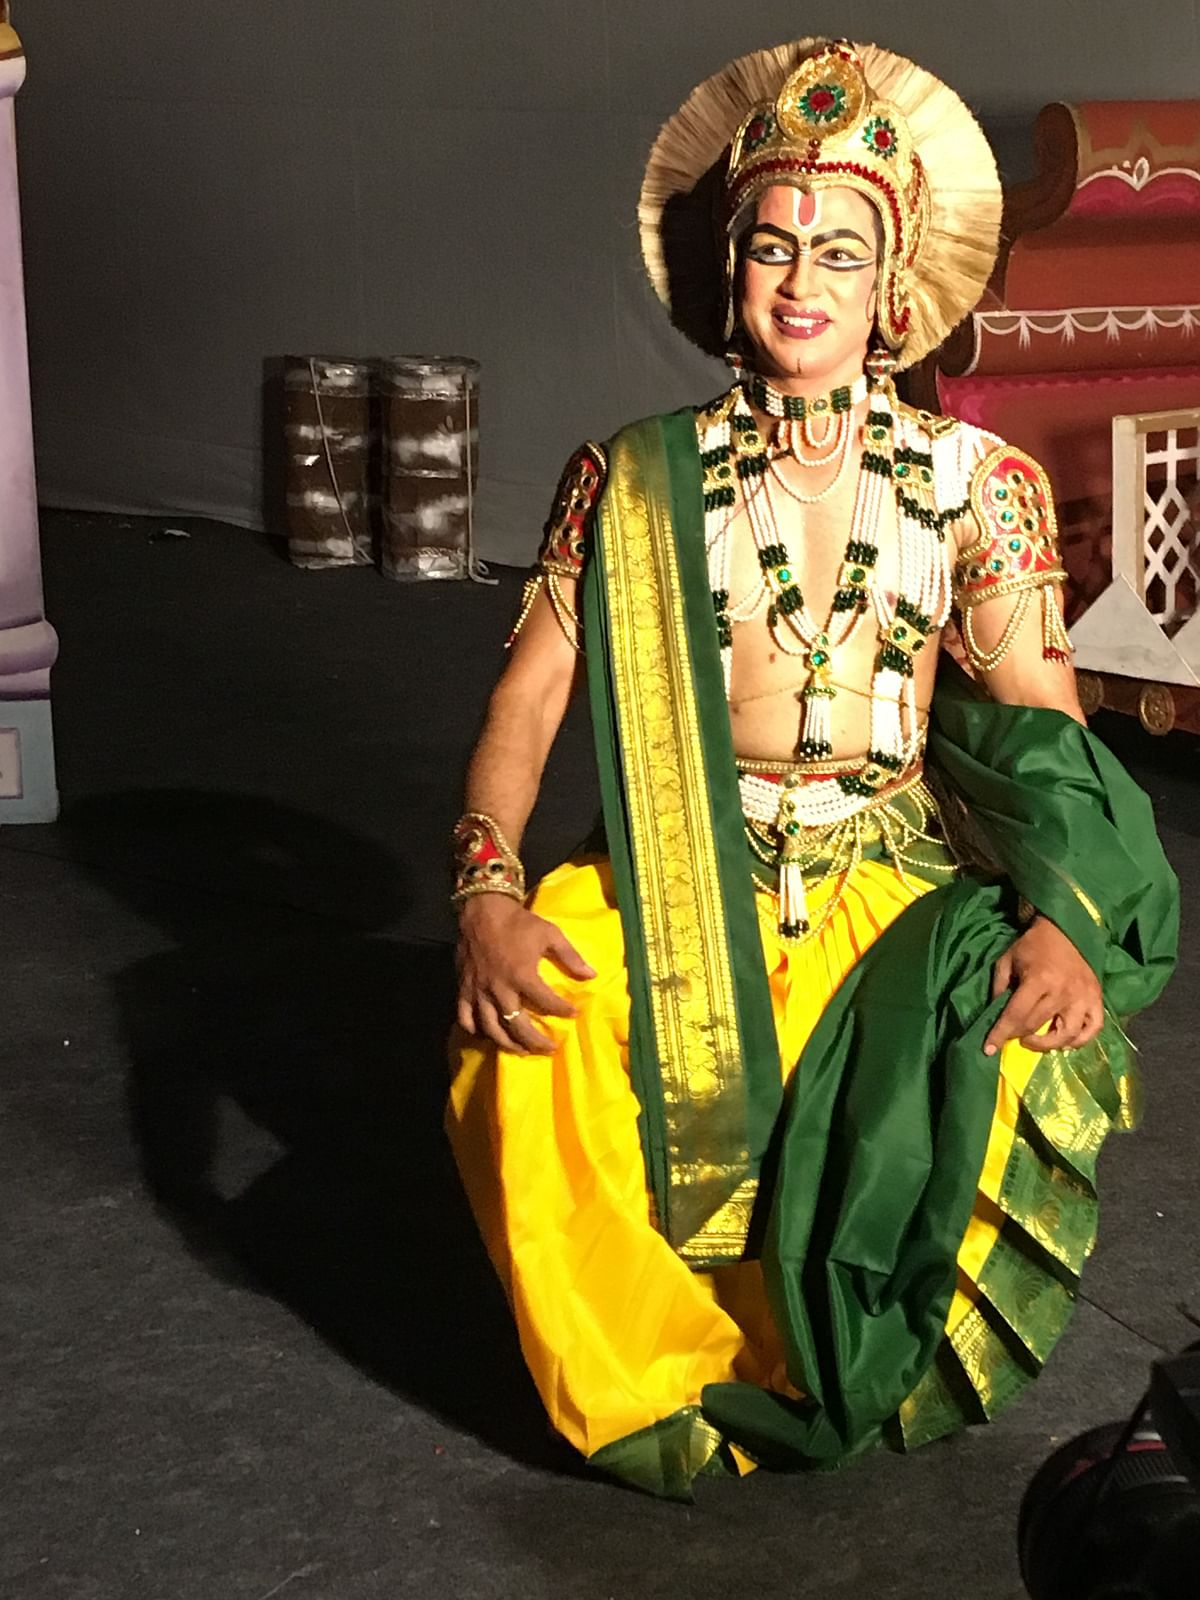 Rajkumar Sharma has been playing 'Ram' in the eponymous production for more than a decade now.